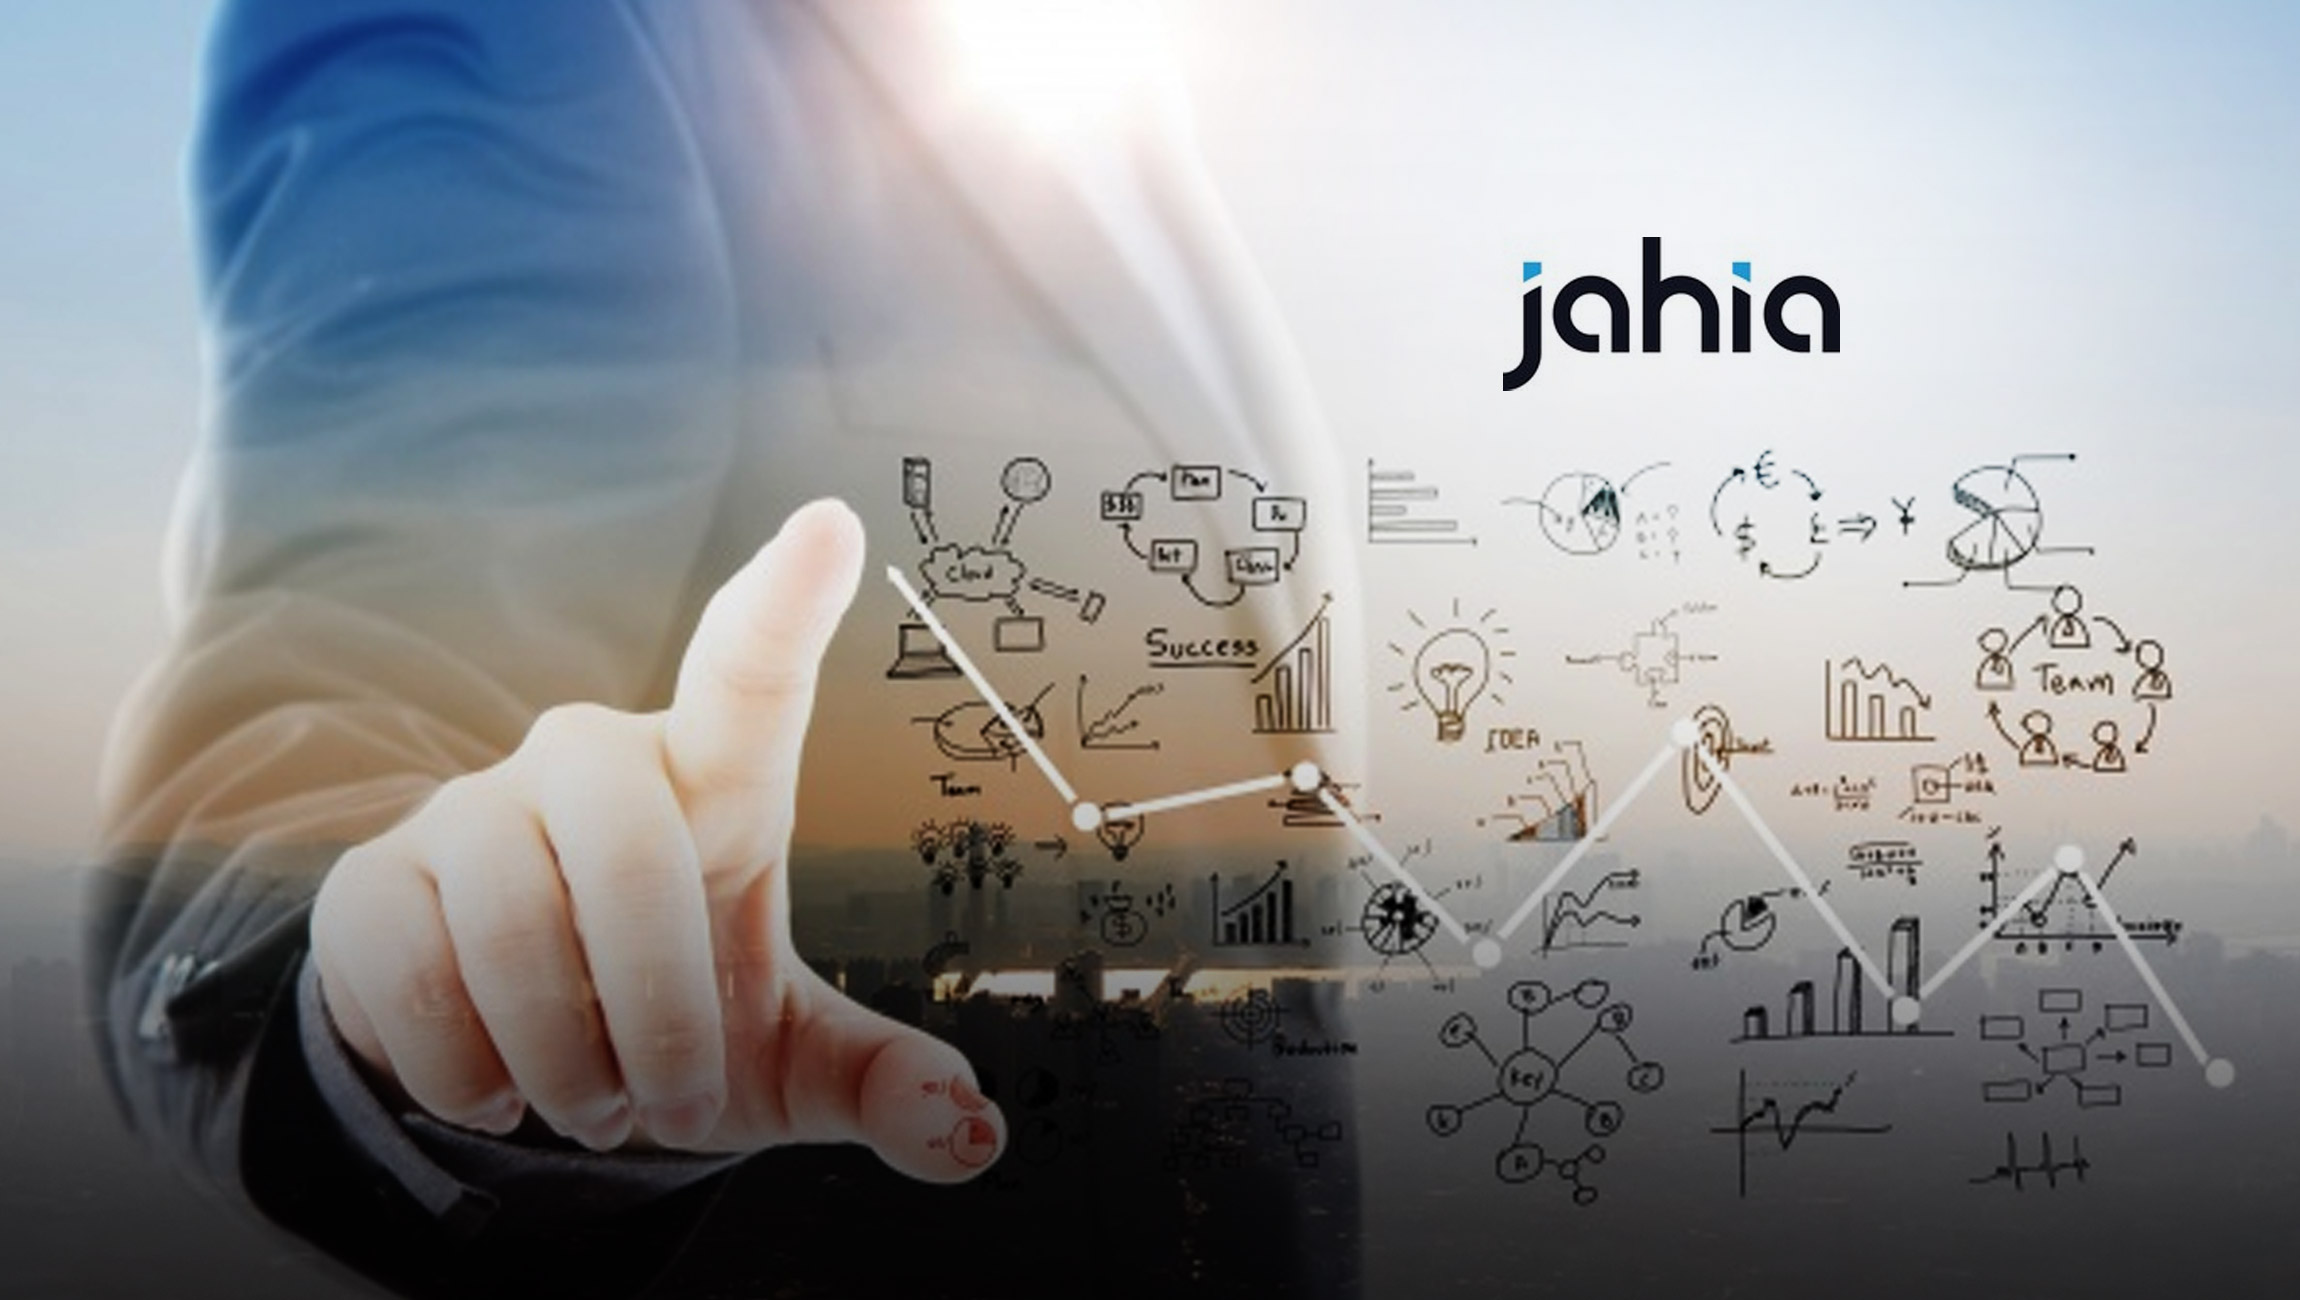 Jahia Announces Successful Completion of HIPAA Compliance Assessment